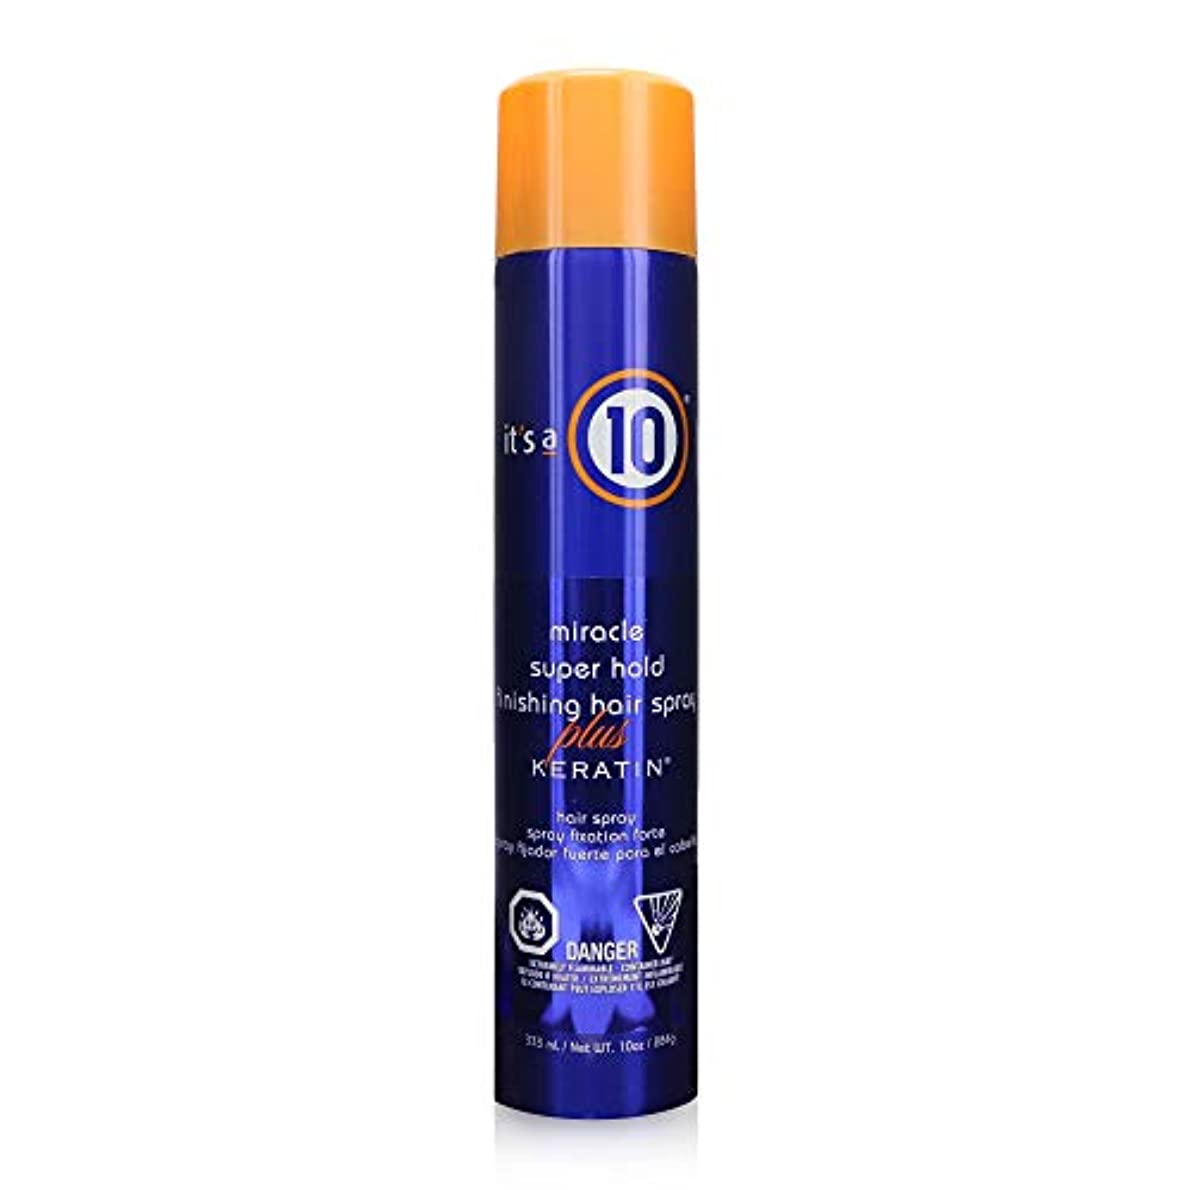 全体愛実り多いby It's a 10 MIRACLE SUPER HOLD FINISHING SPRAY PLUS KERATIN 10 OZ by ITS A 10